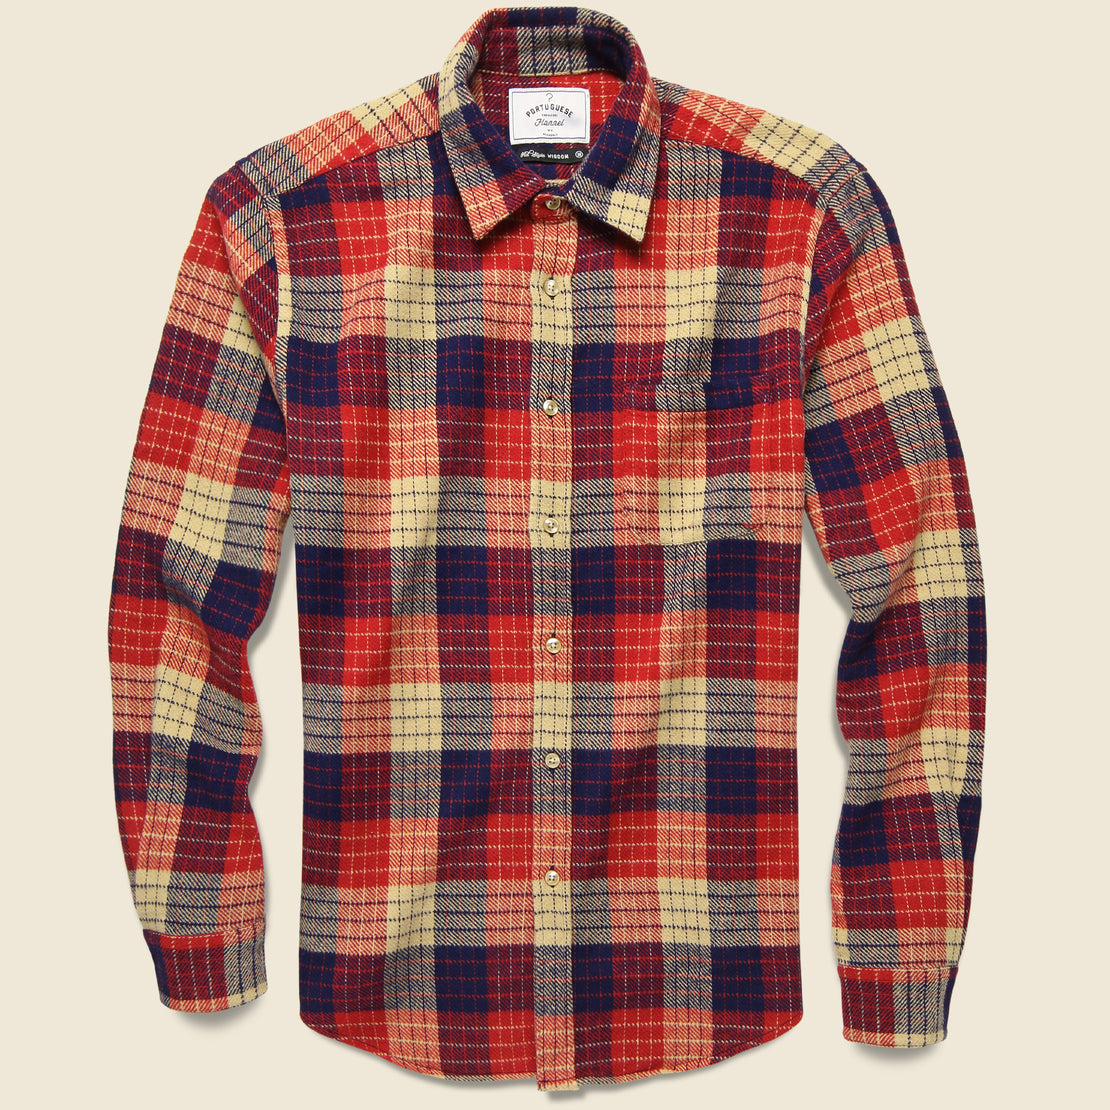 Portuguese Flannel Village Plaid Flannel - Red/White